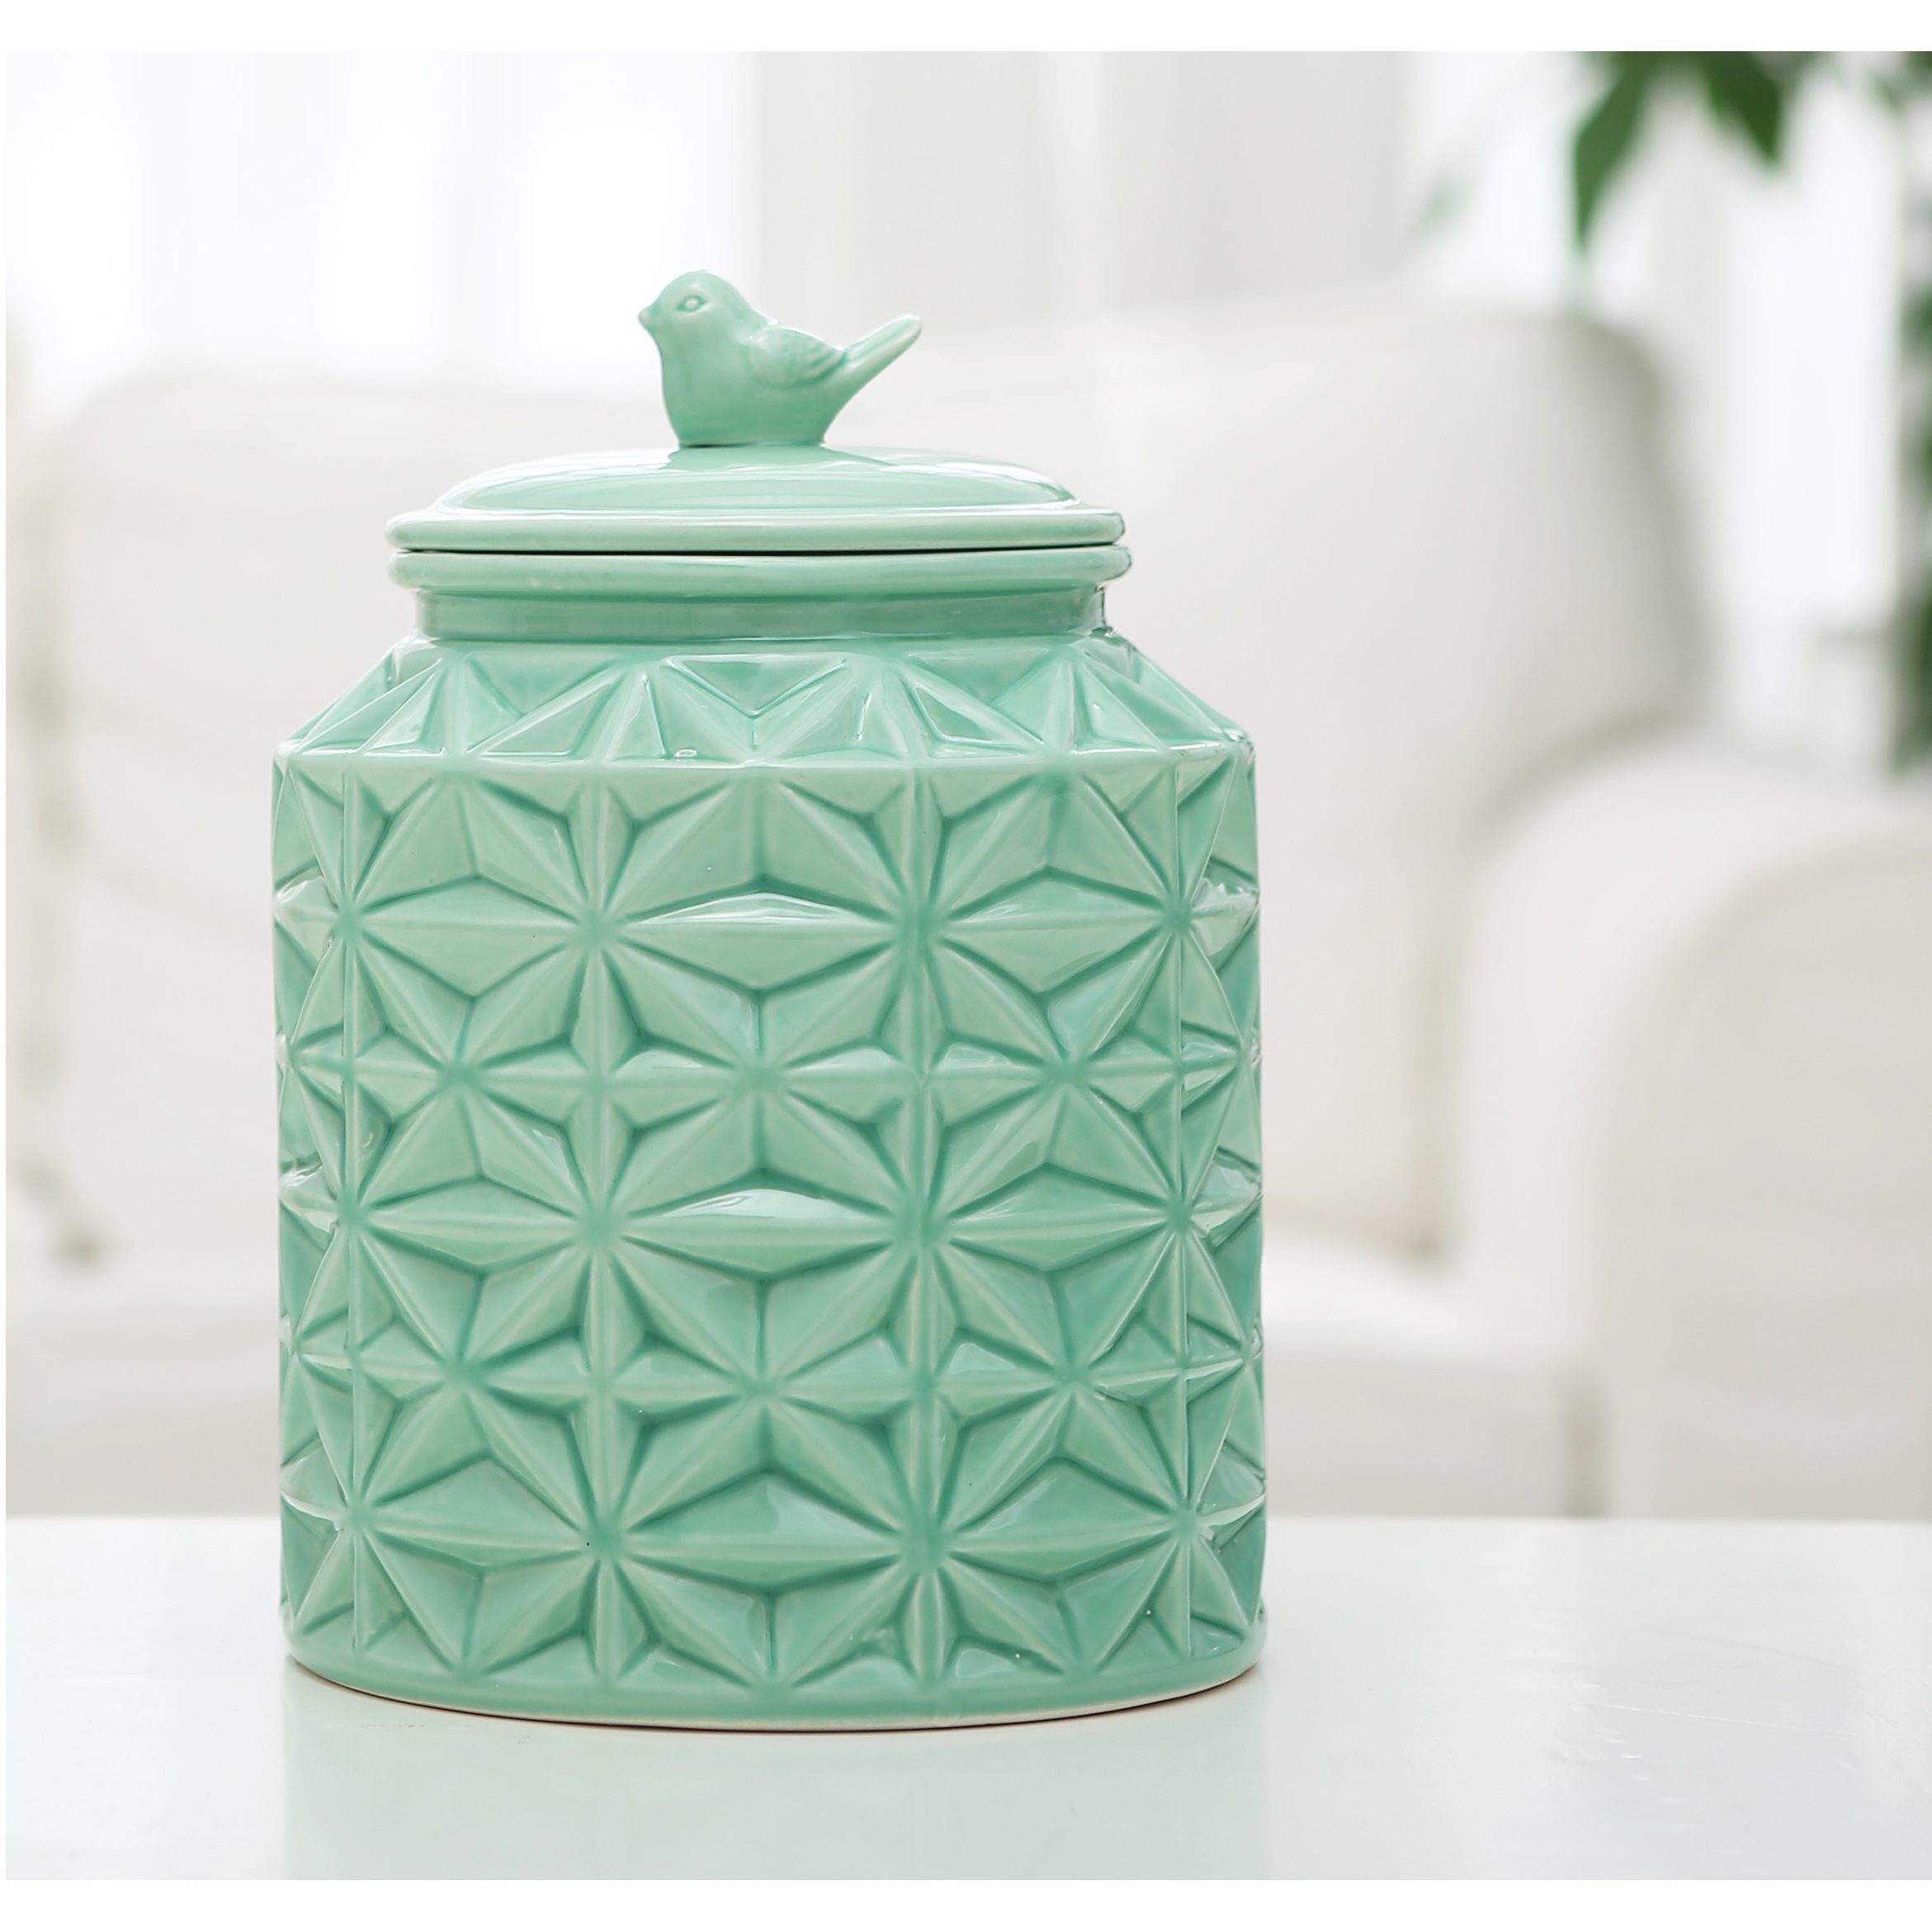 Turquoise Ceramic Kitchen Flour Canister Cookie Jar Abstract Star ...